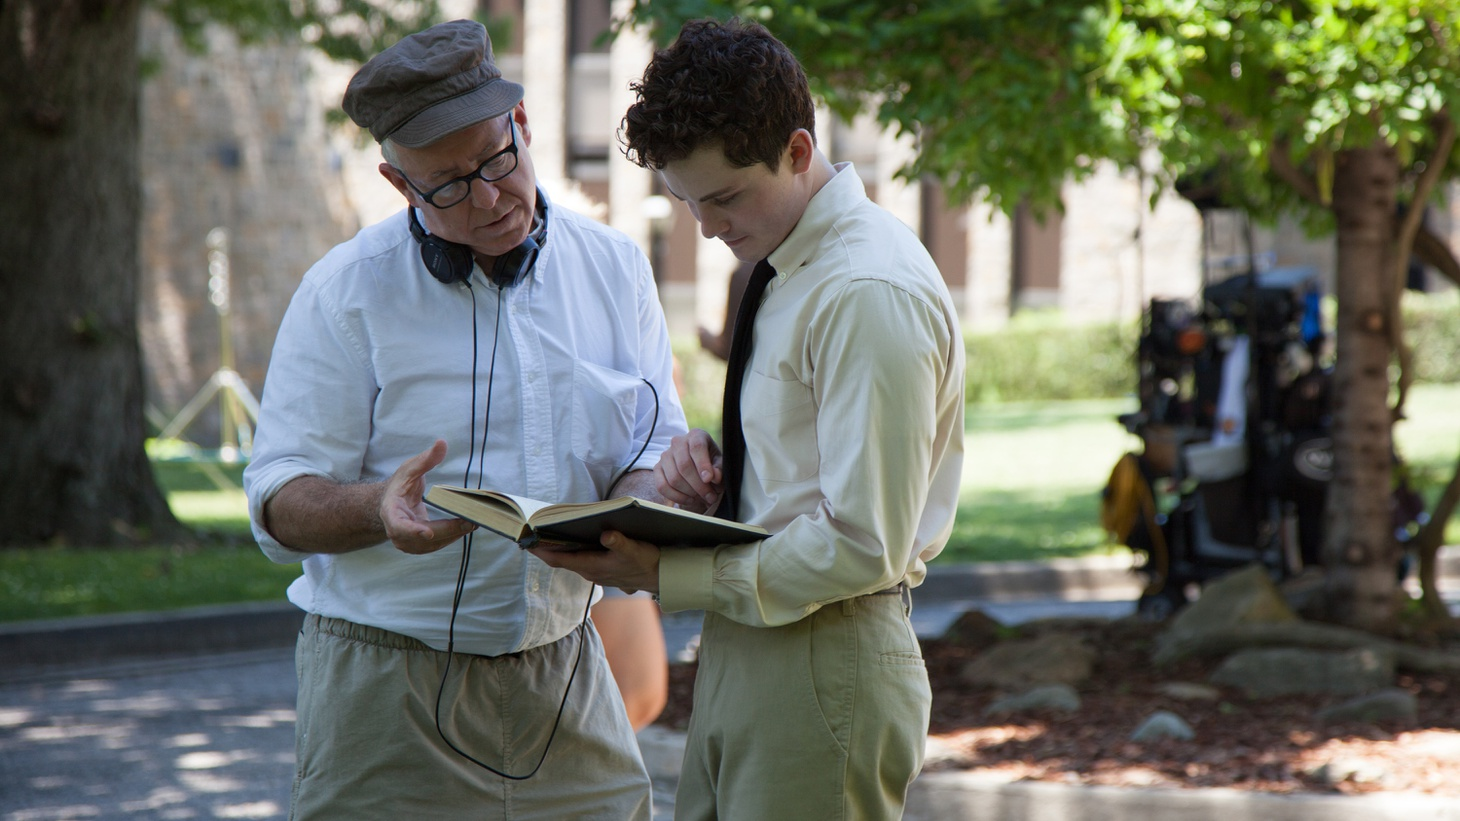 James Schamus was a successful producer of independent films with his company, Good Machine, and then as the CEO of art-house label Focus Features for 13 years. In 2013, he was fired and decided to try something new. Schamus tells us about calling the shots on his directorial debut, Indignation.